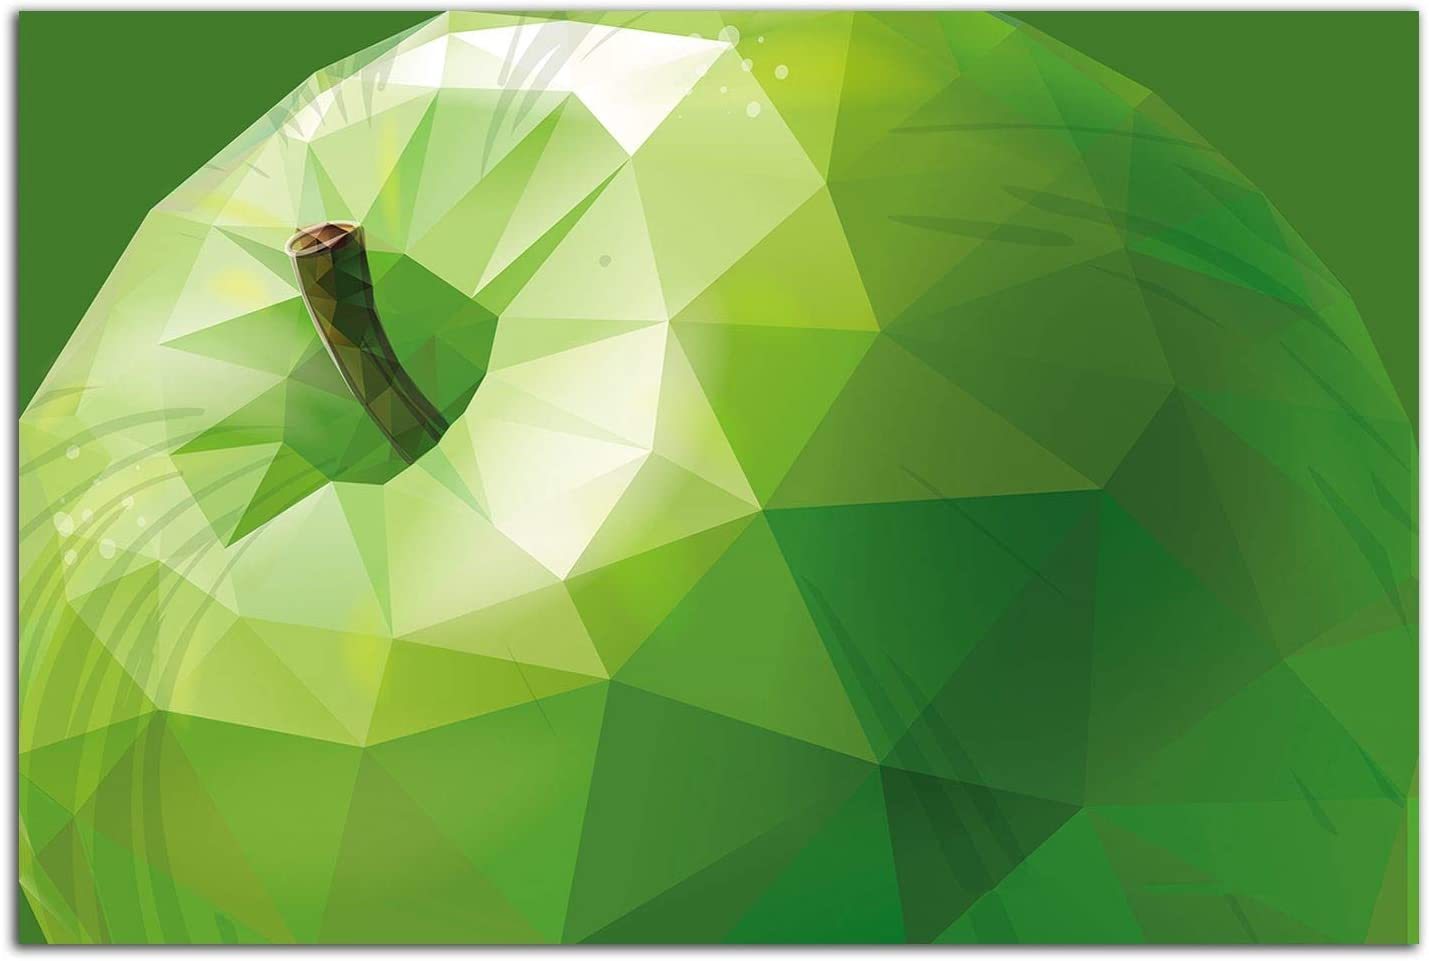 Startonight Glass Wall Art - Stylized Green Apple Decor - Tempered Acrylic Glass Artwork 24 x 36 Inches